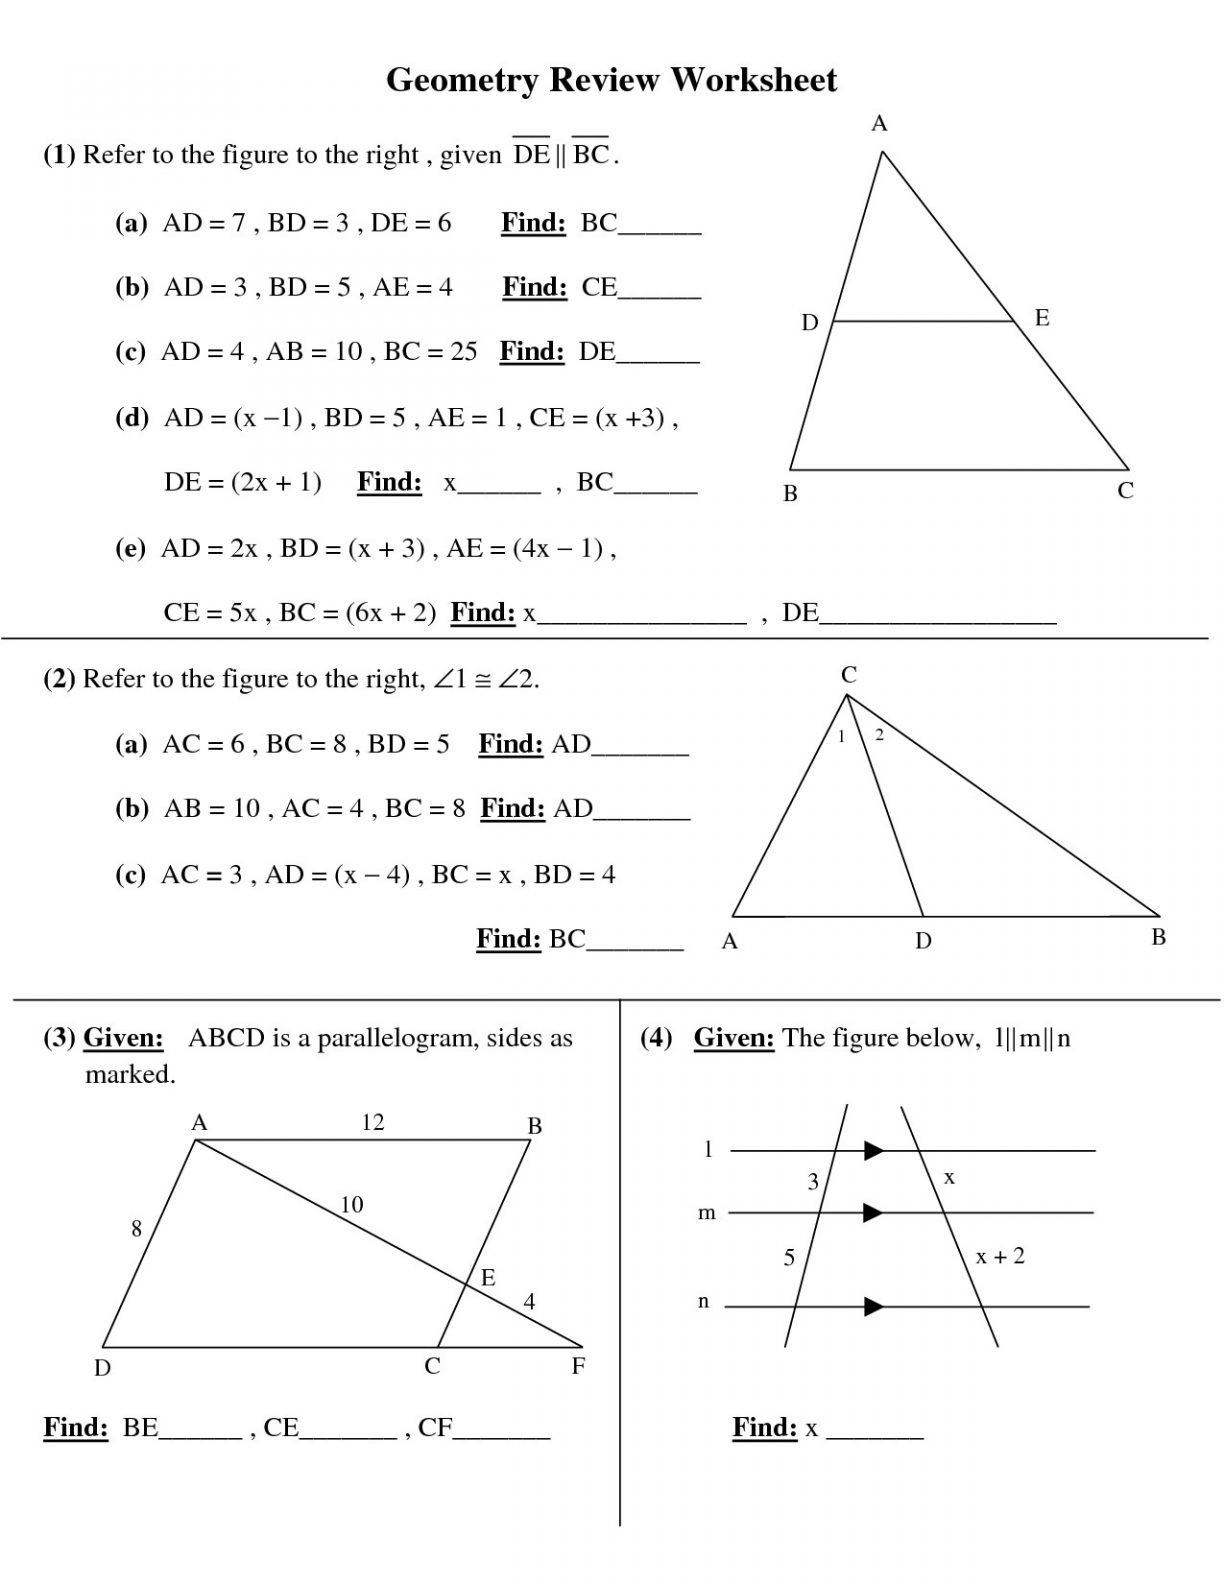 Free Geometry Worksheets For High School